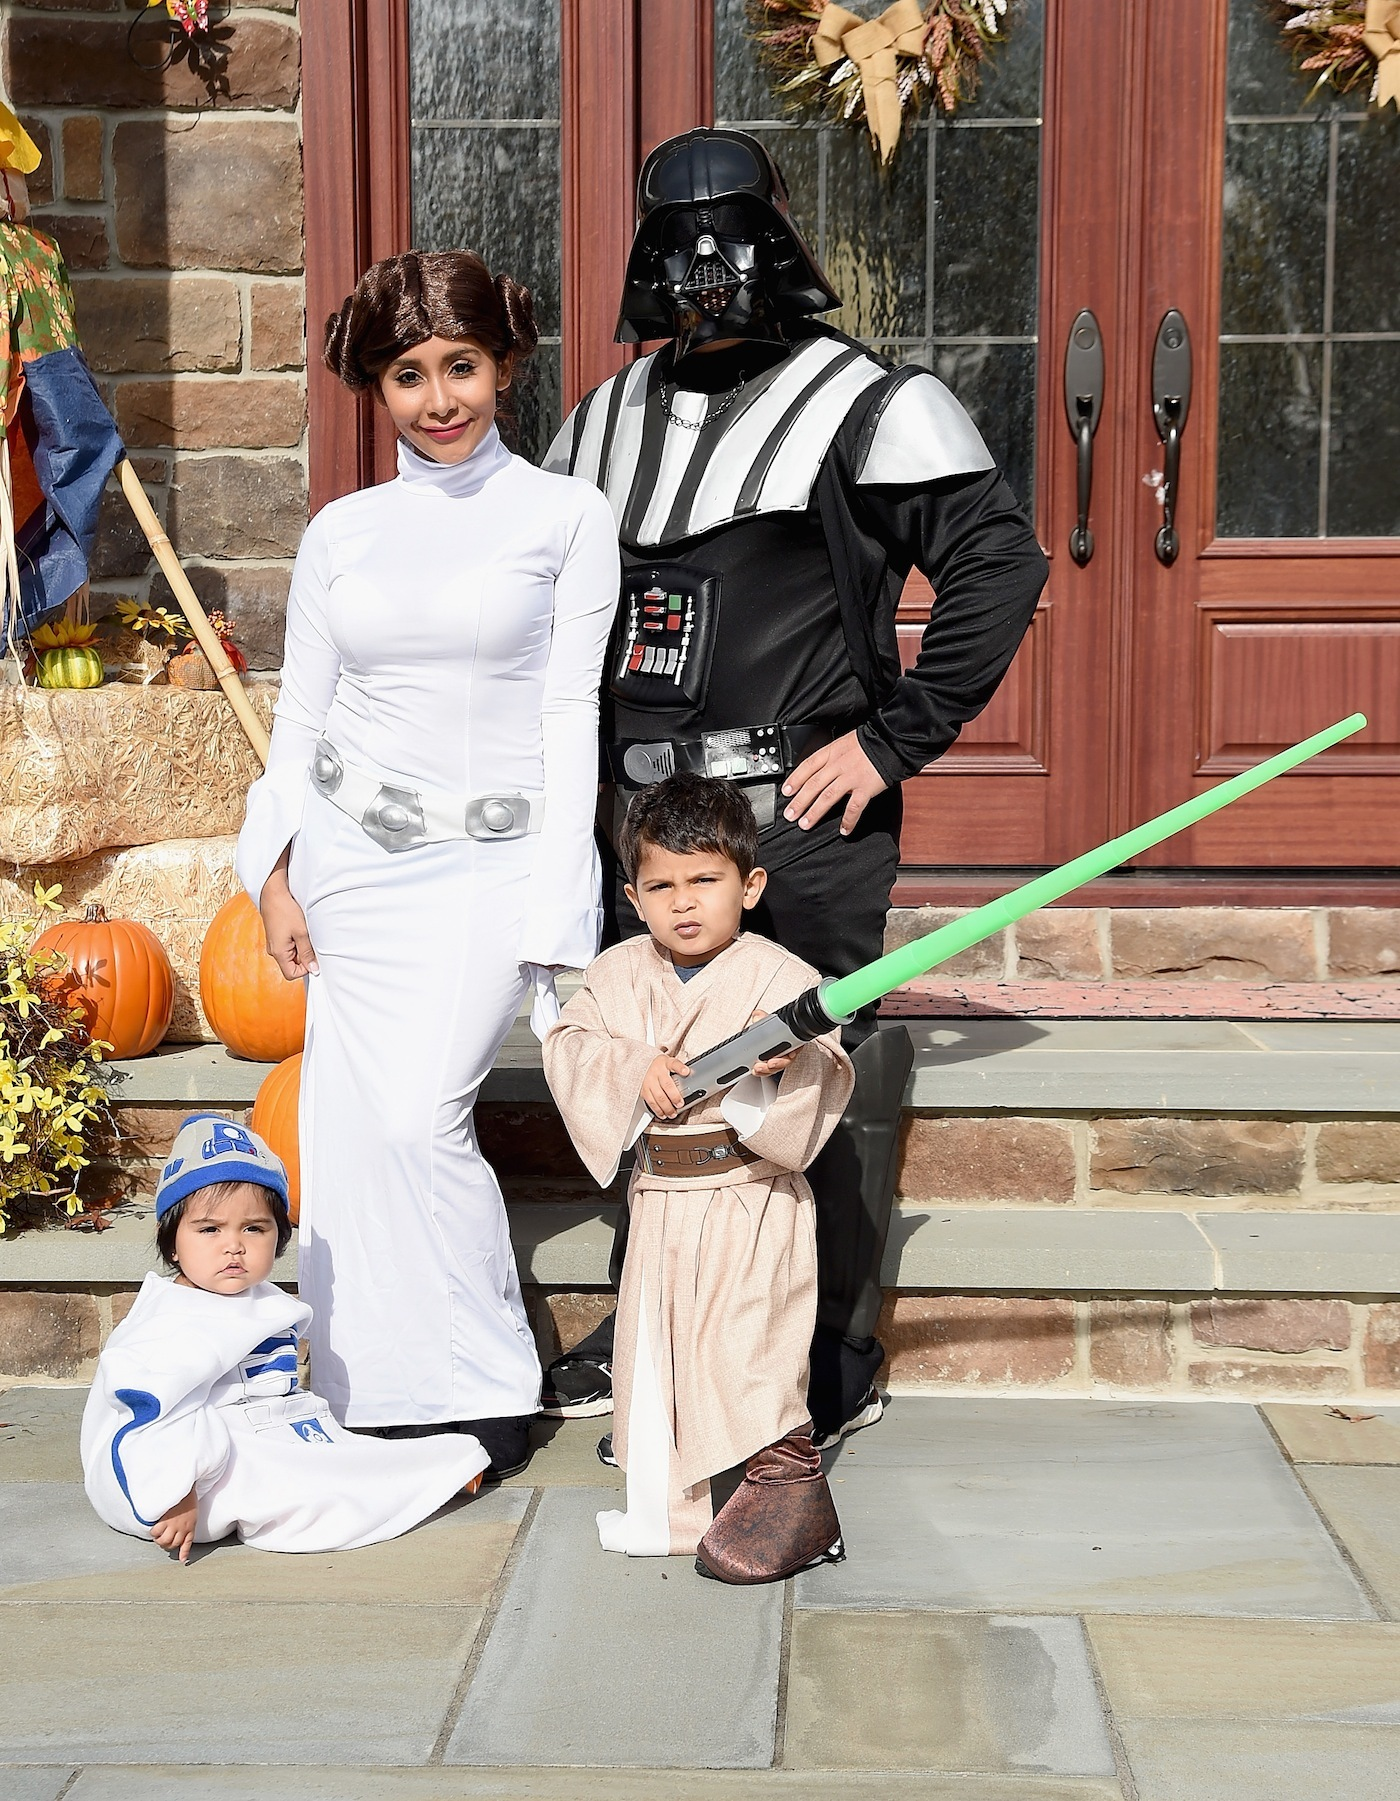 ad63270226b Polizzi and her family on Halloween. Image via Getty.